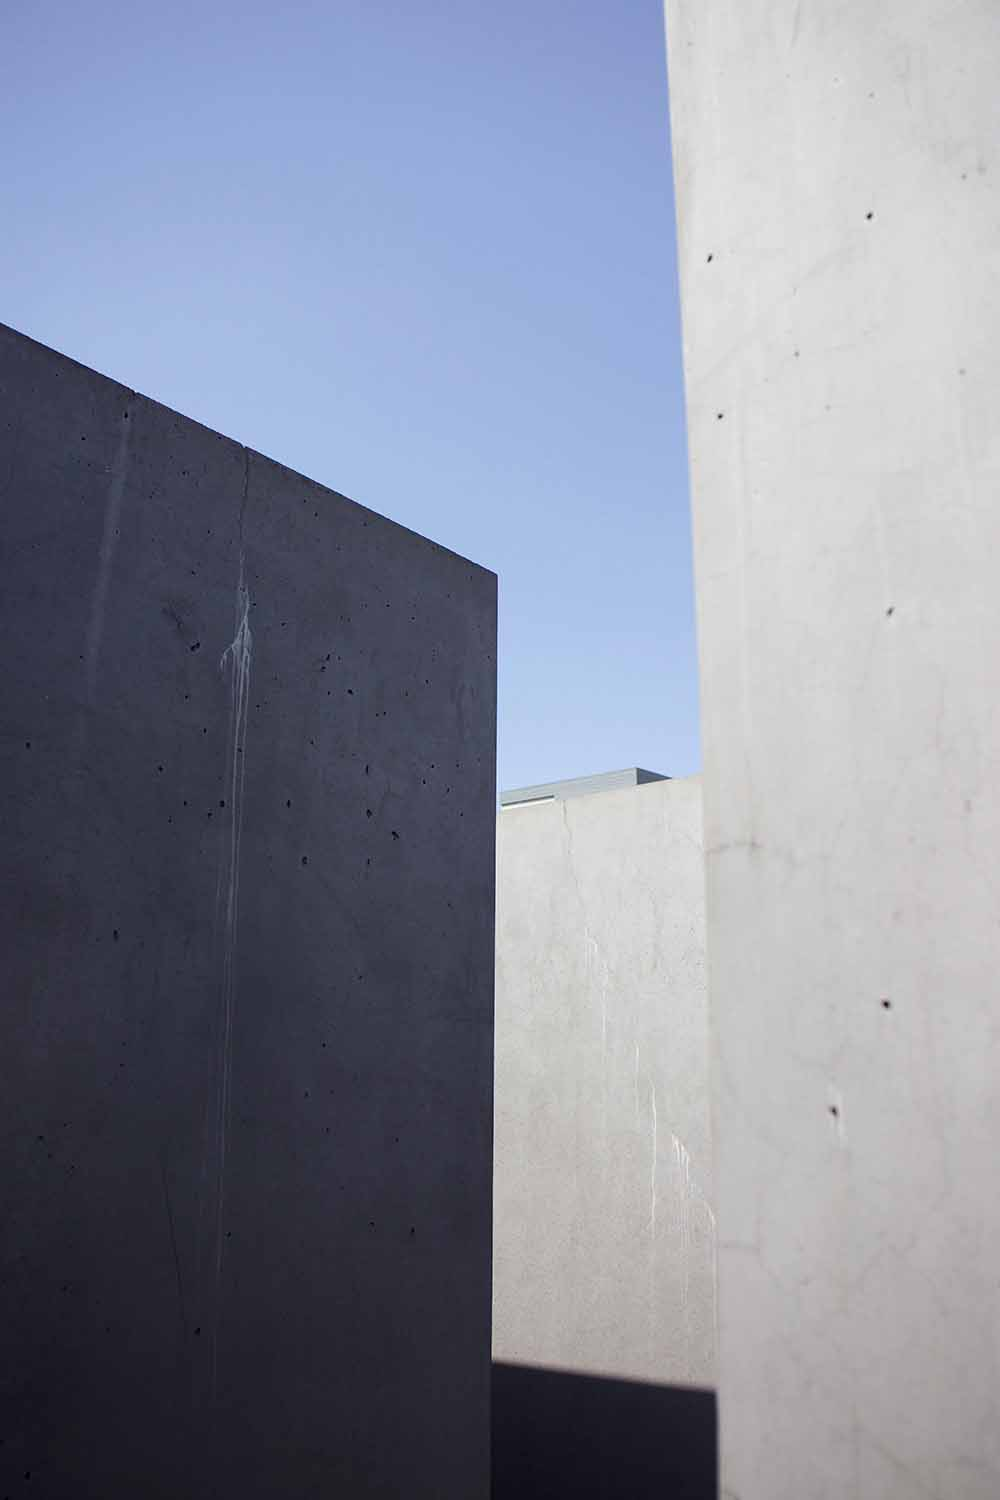 Abstract concrete forms.